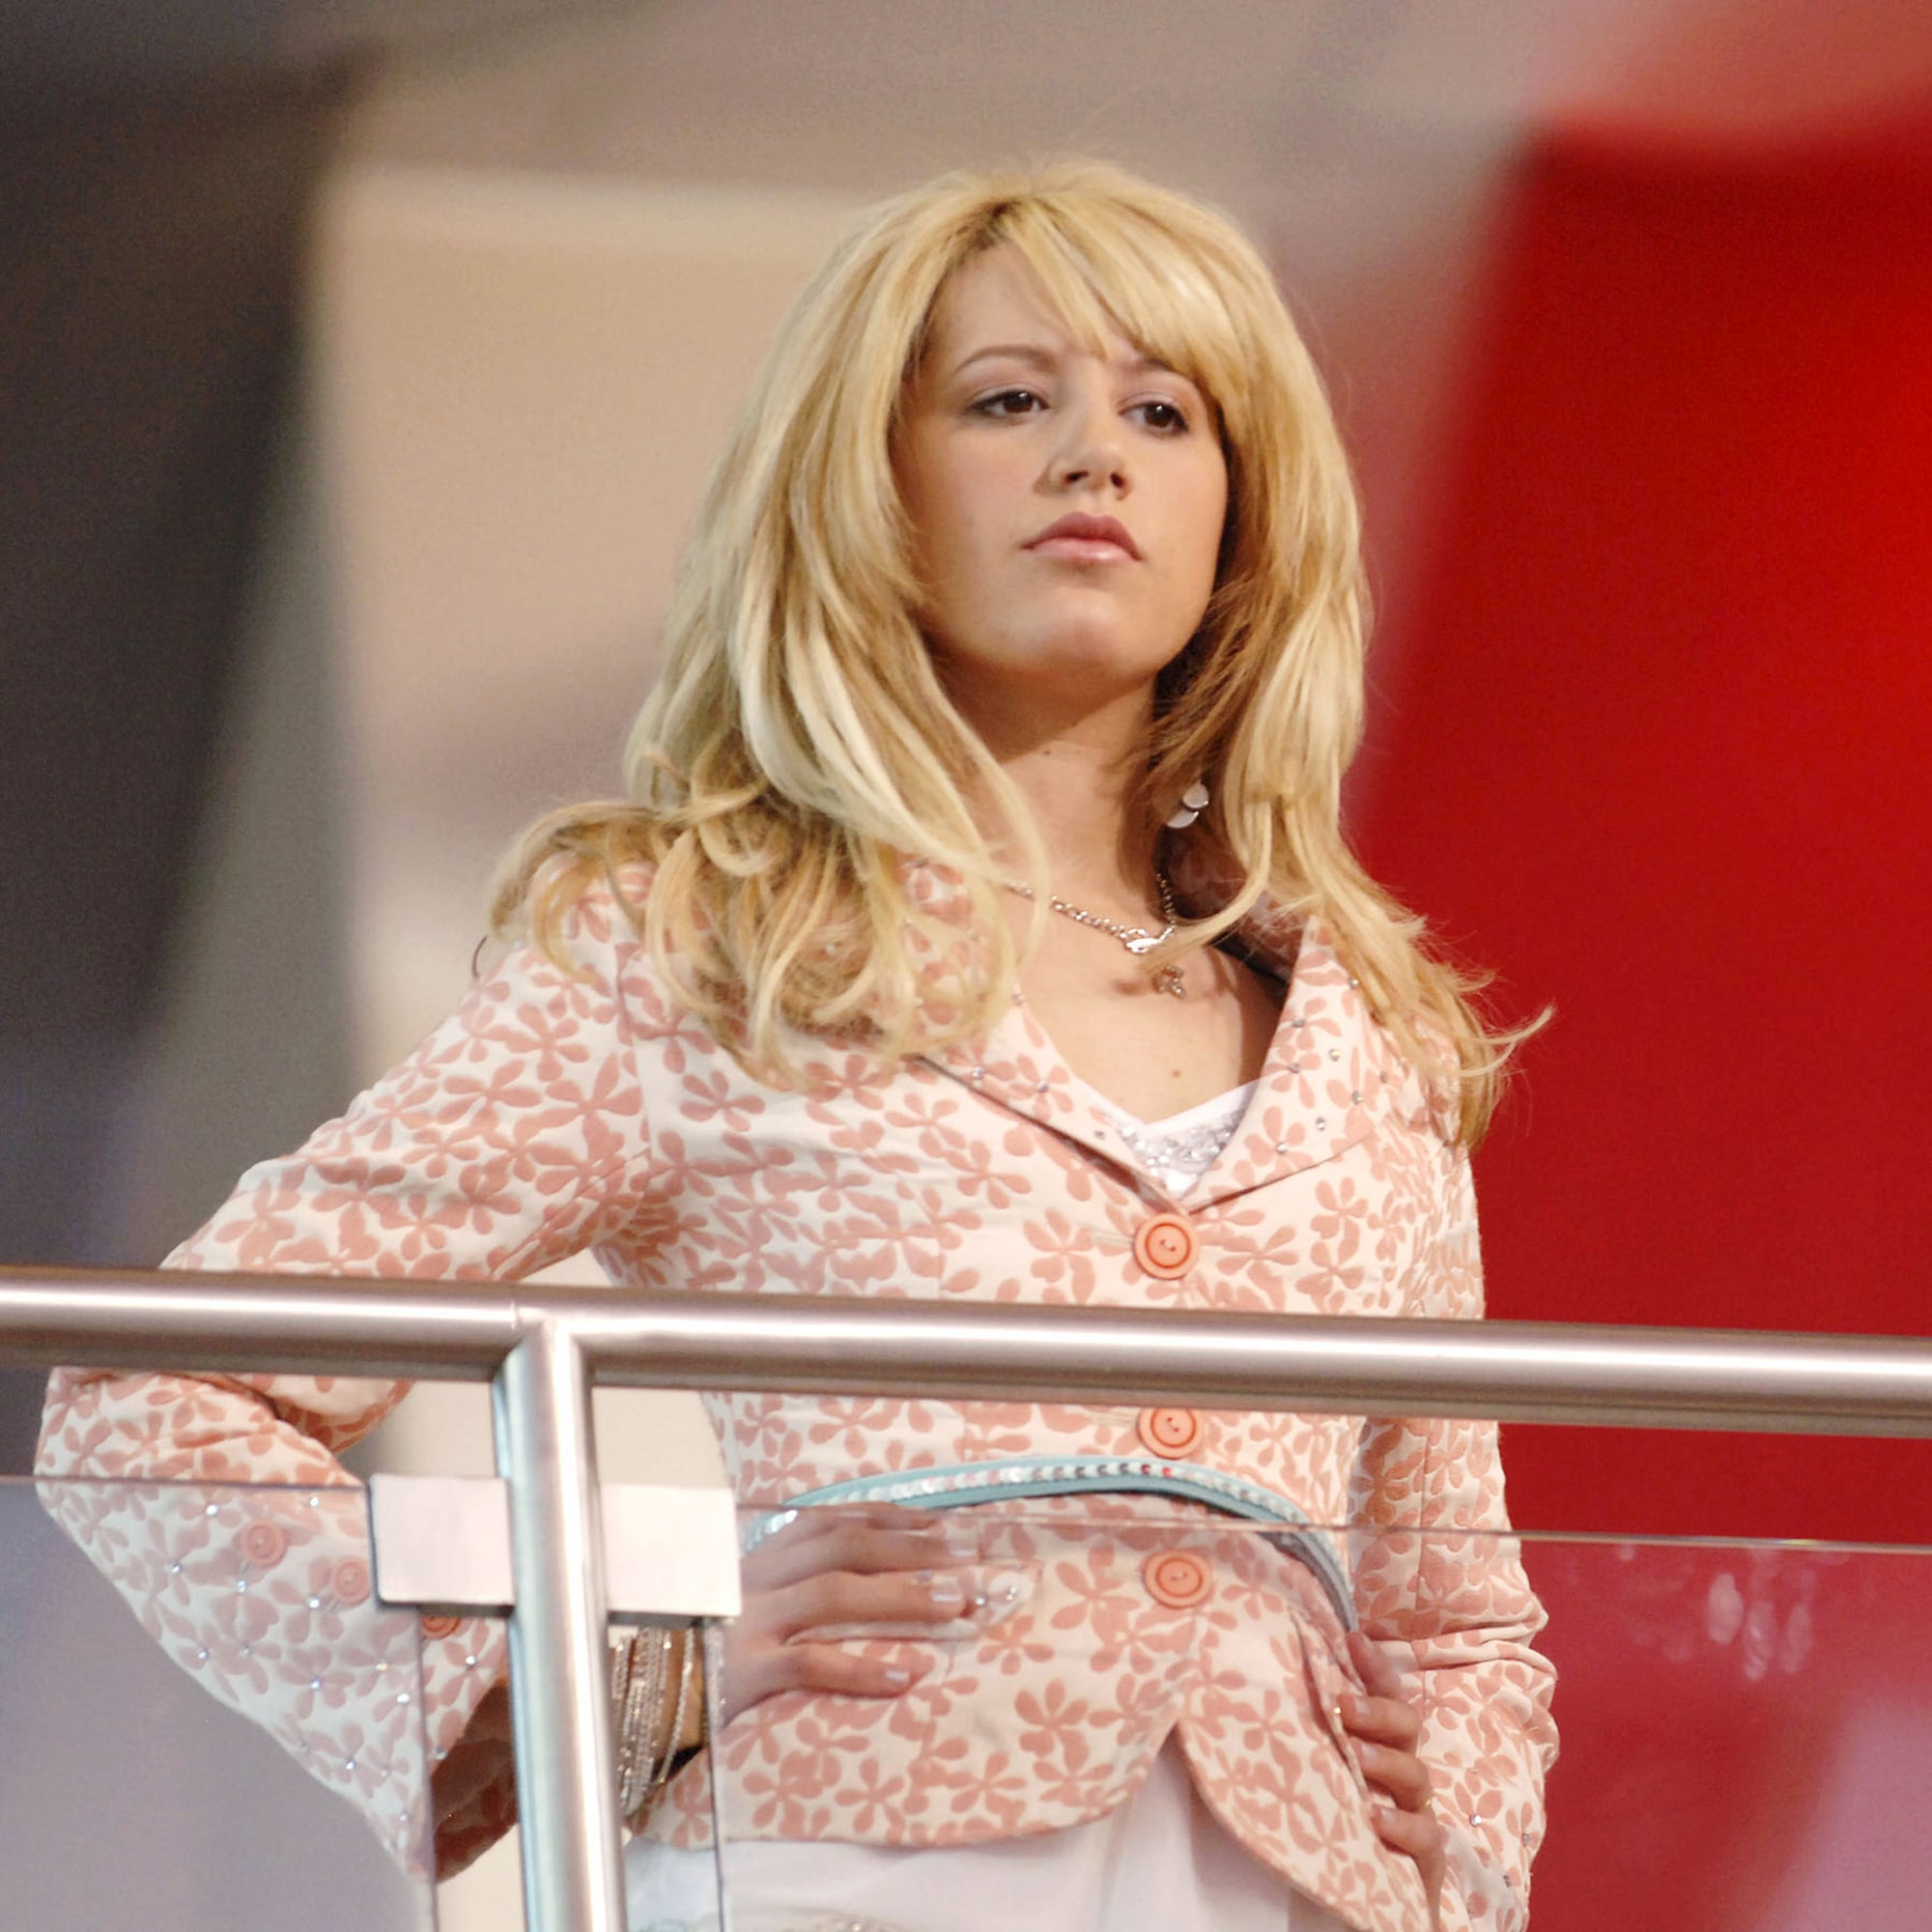 High School Musical Fans Want Justice For Sharpay Evans | POPSUGAR Entertainment